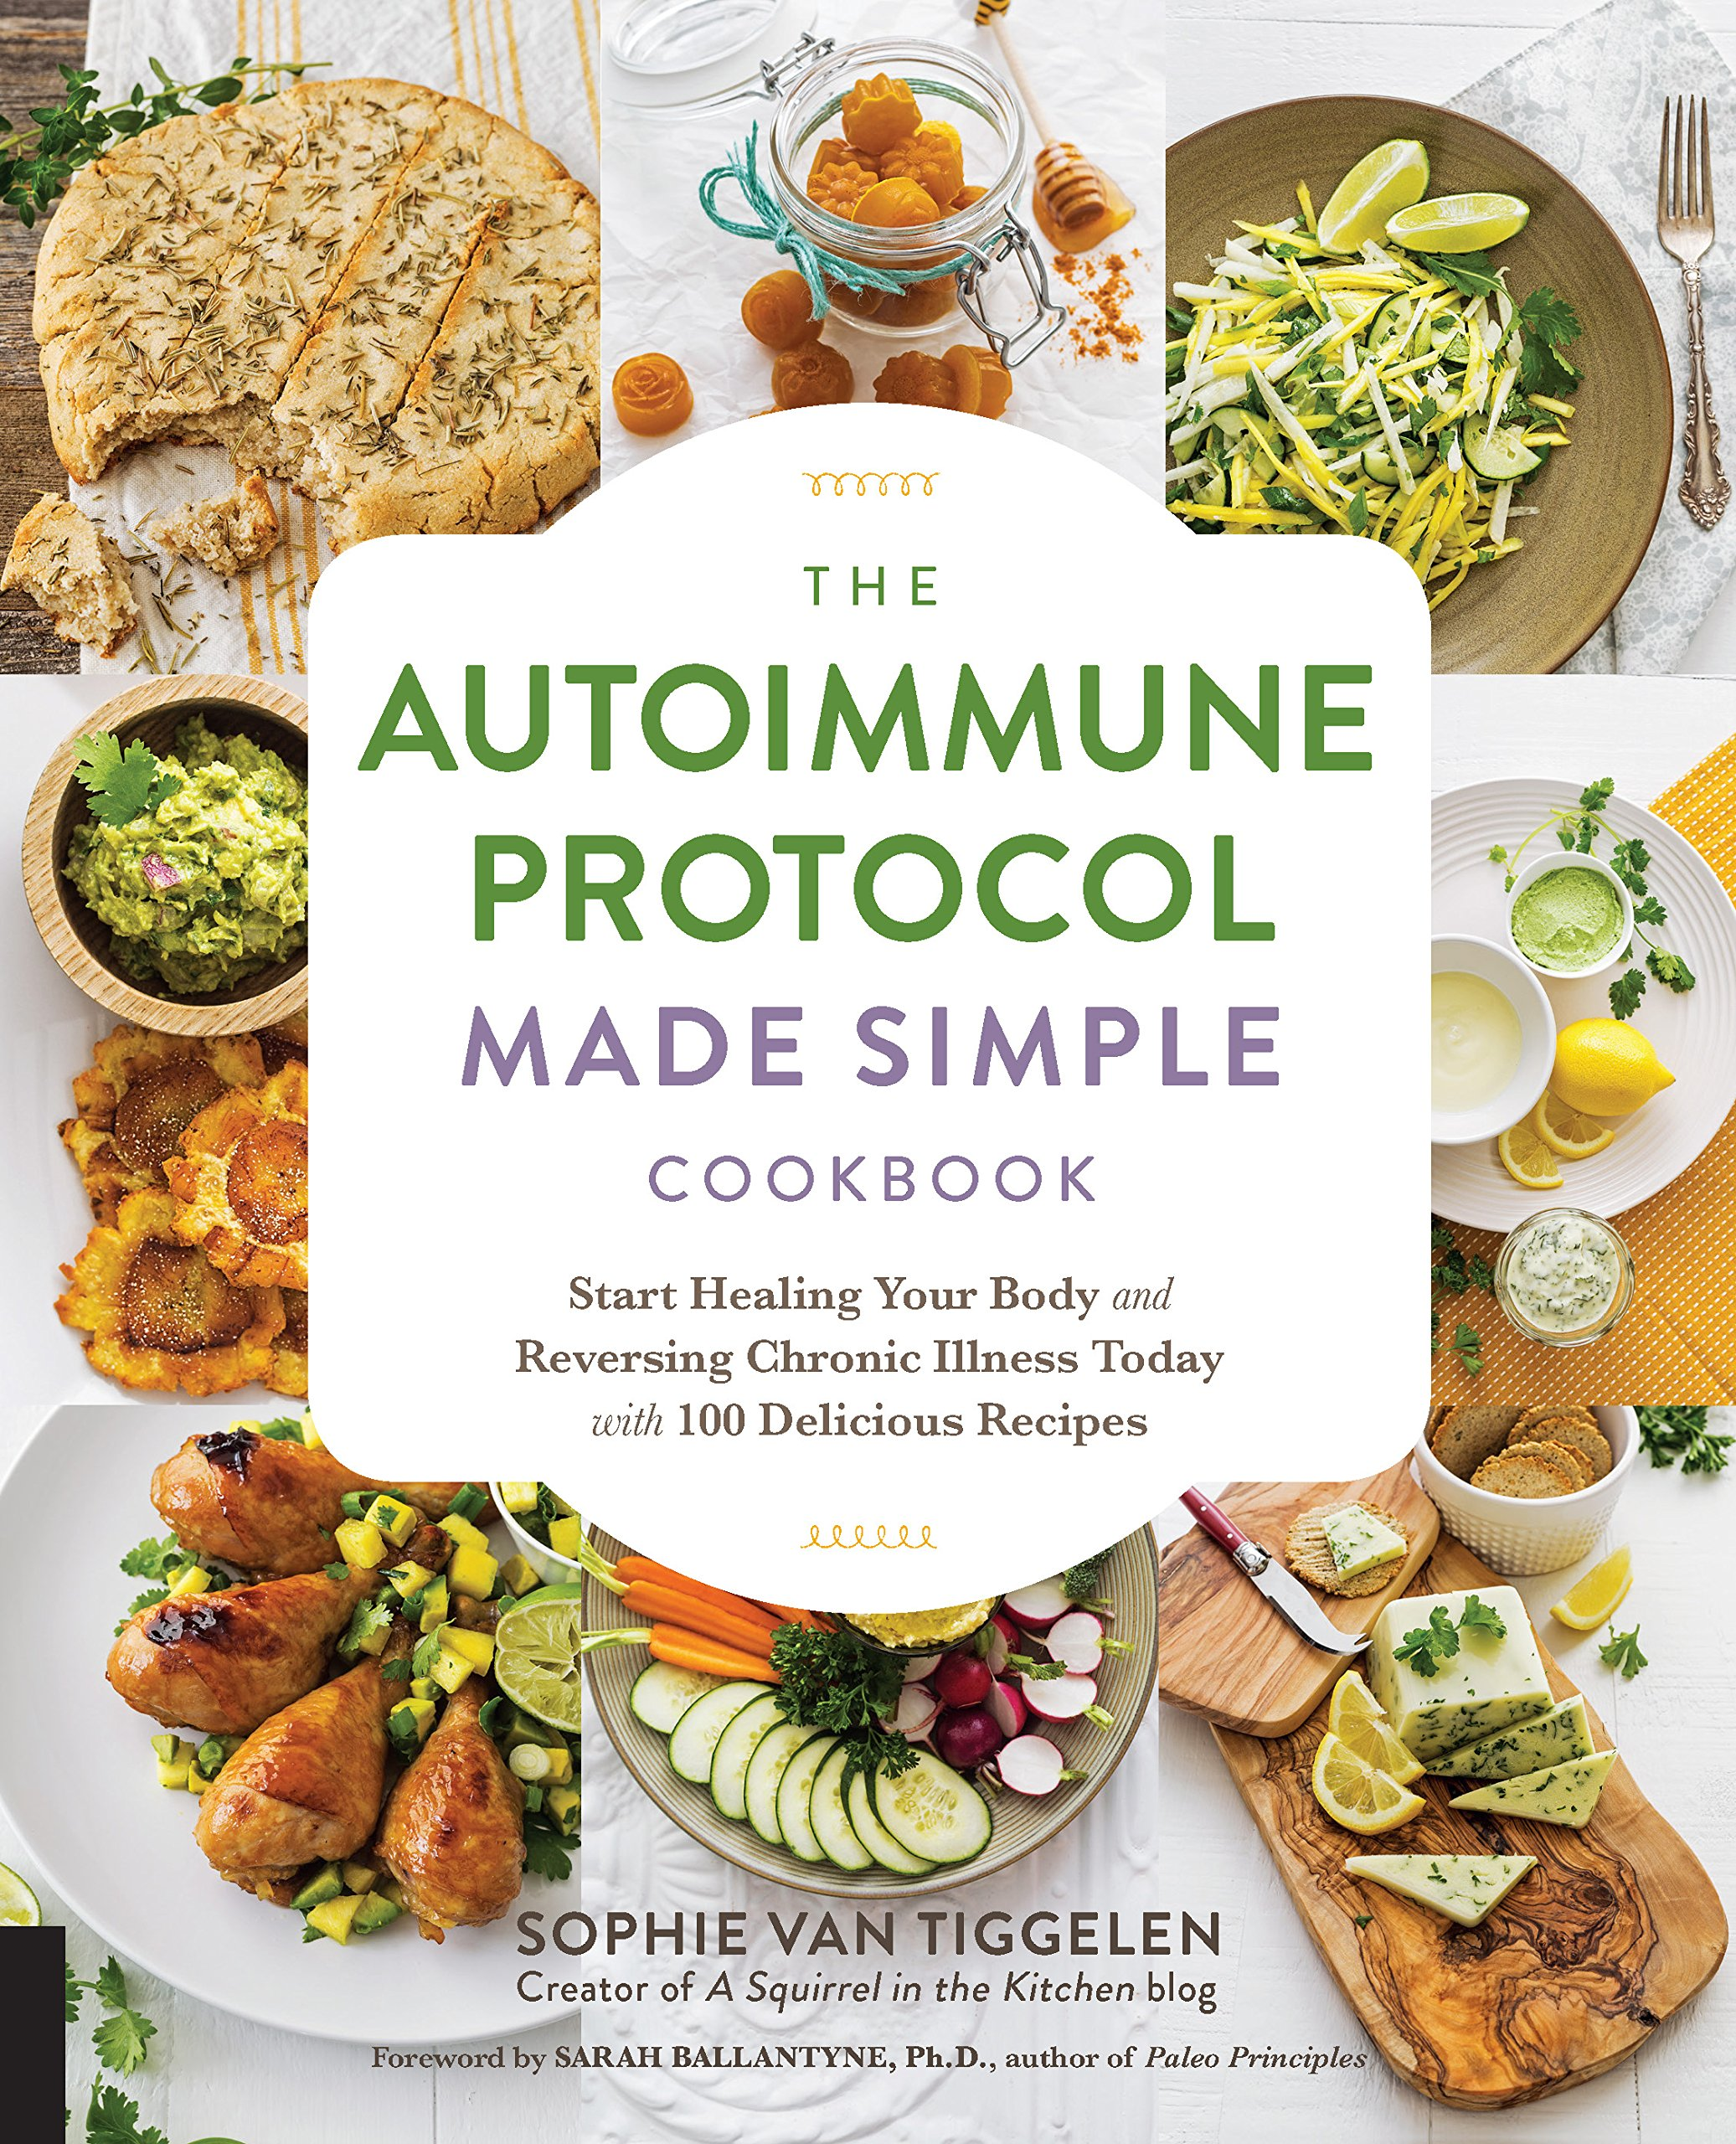 Download The Autoimmune Protocol Made Simple Cookbook: Start Healing Your Body and Reversing Chronic Illness Today with 100 Delicious Recipes PDF